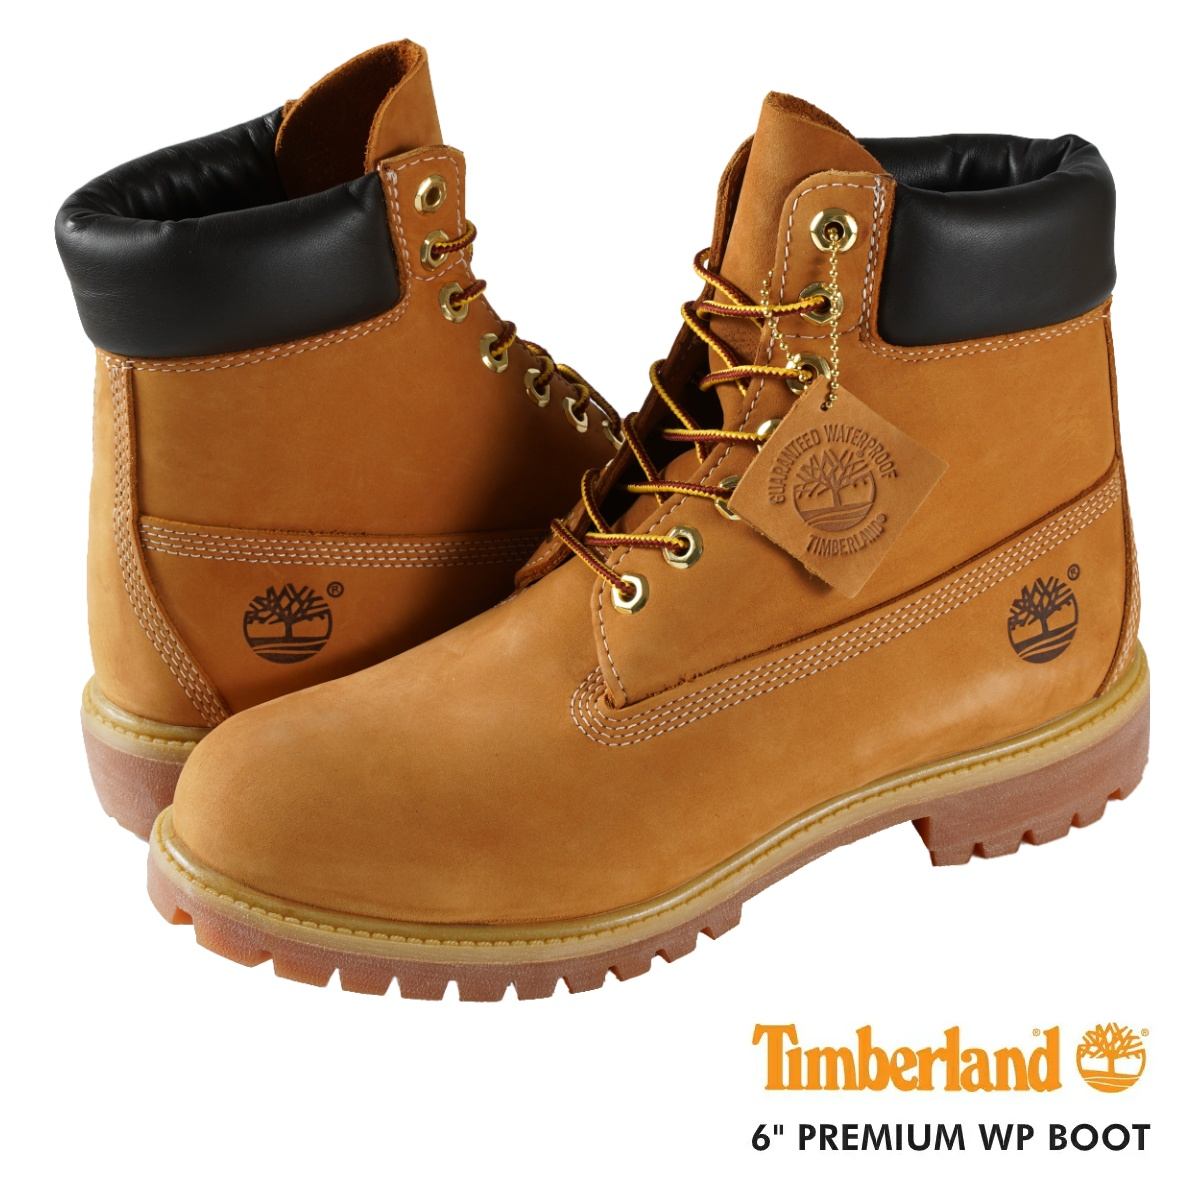 ead8642d537 LOWTEX PLUS  TIMBERLAND 6inch PREMIUM BOOT WHEAT 10061